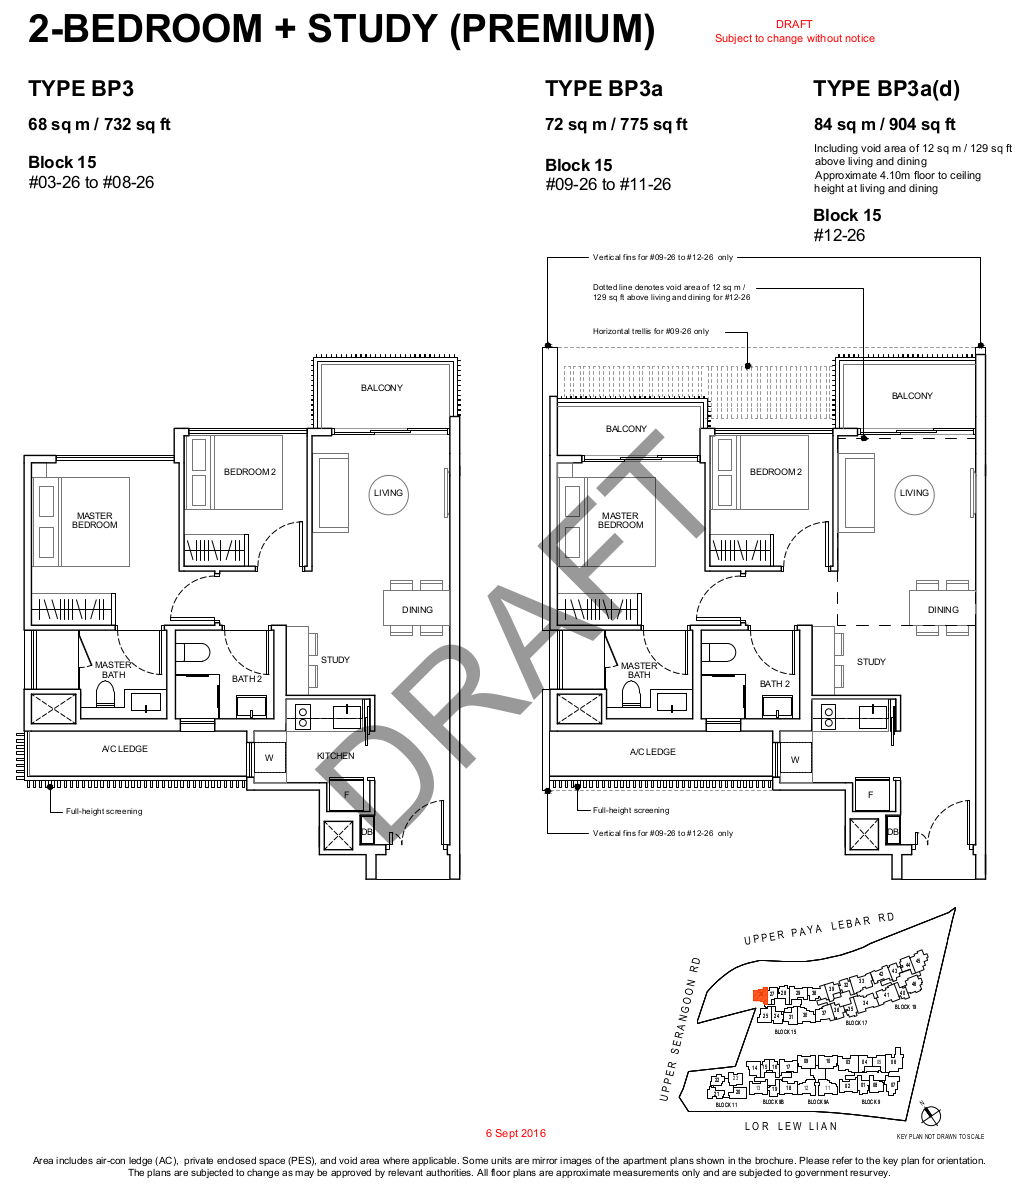 Forest Woods Floor Plan 2BR+Study Premium Type BP3